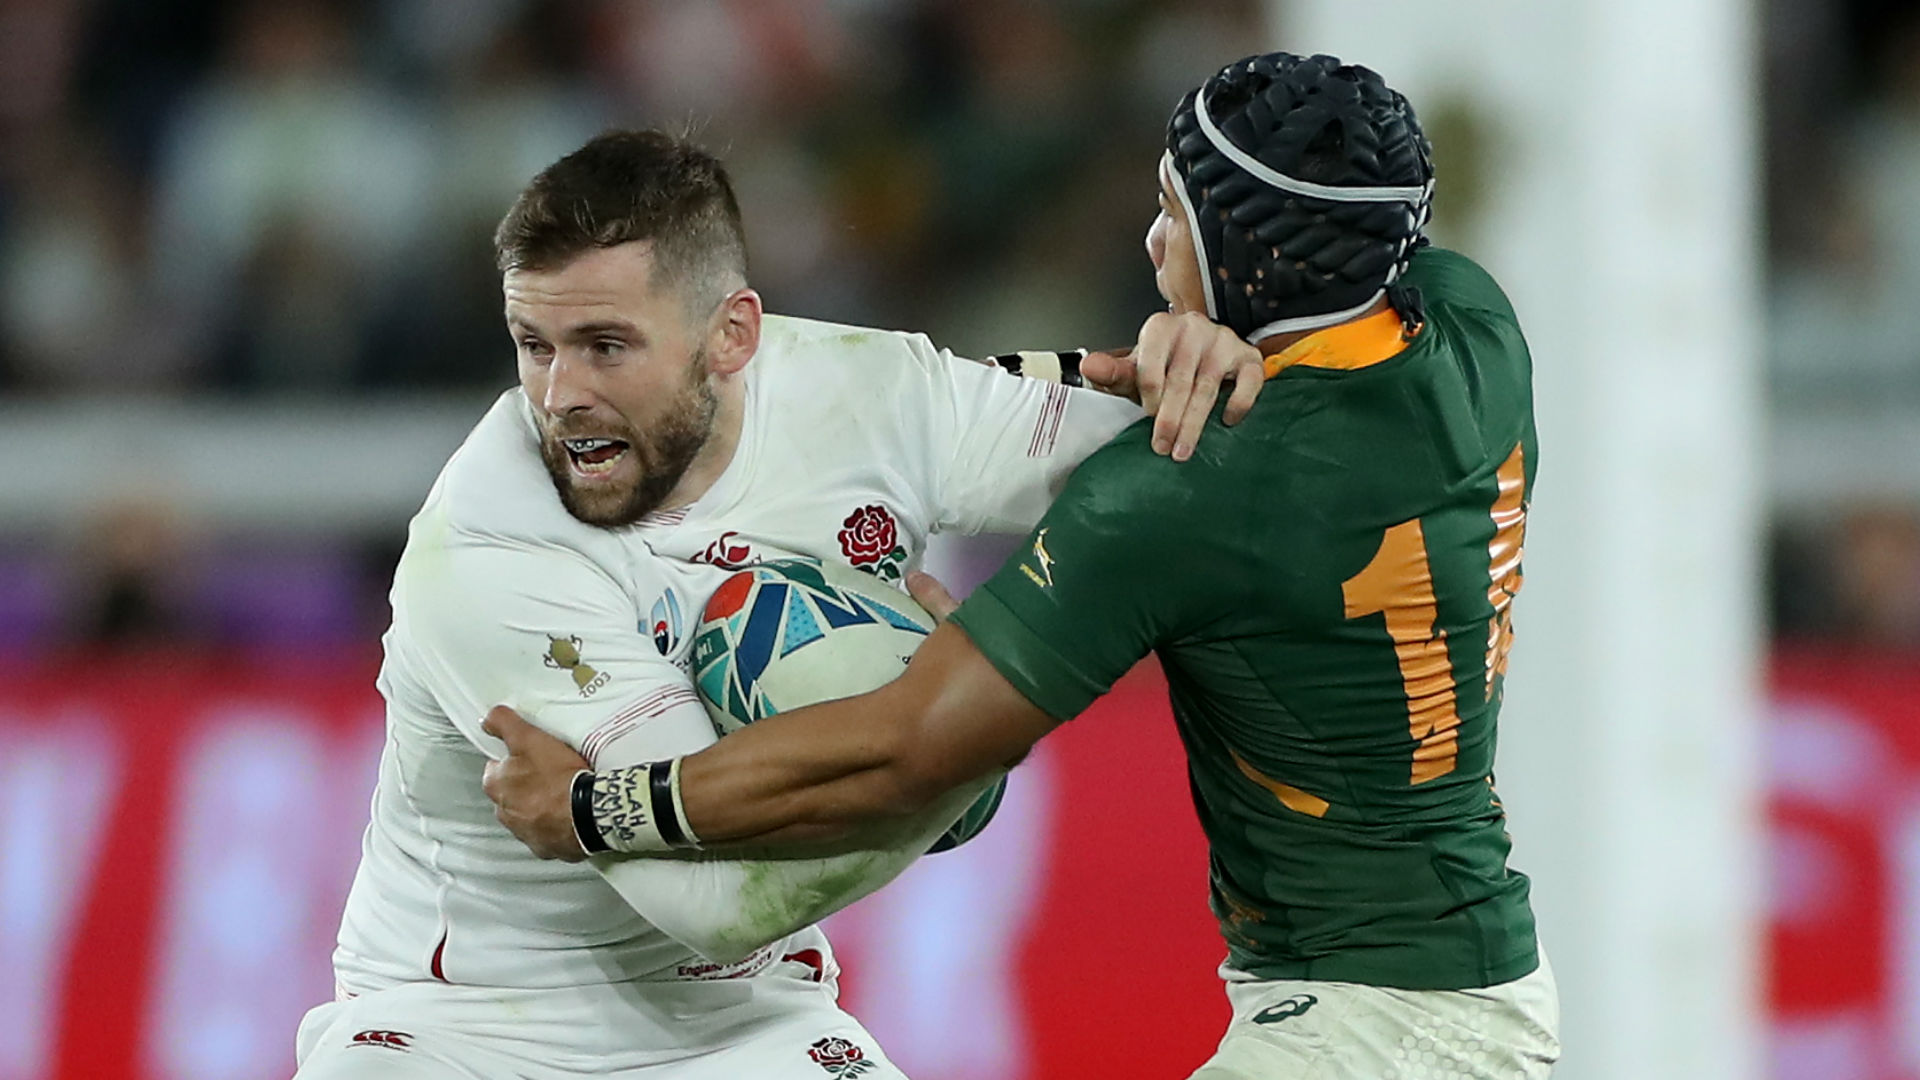 A new global rugby union calendar is being discussed by 10 of the leading nations in the Northern and Southern Hemispheres.